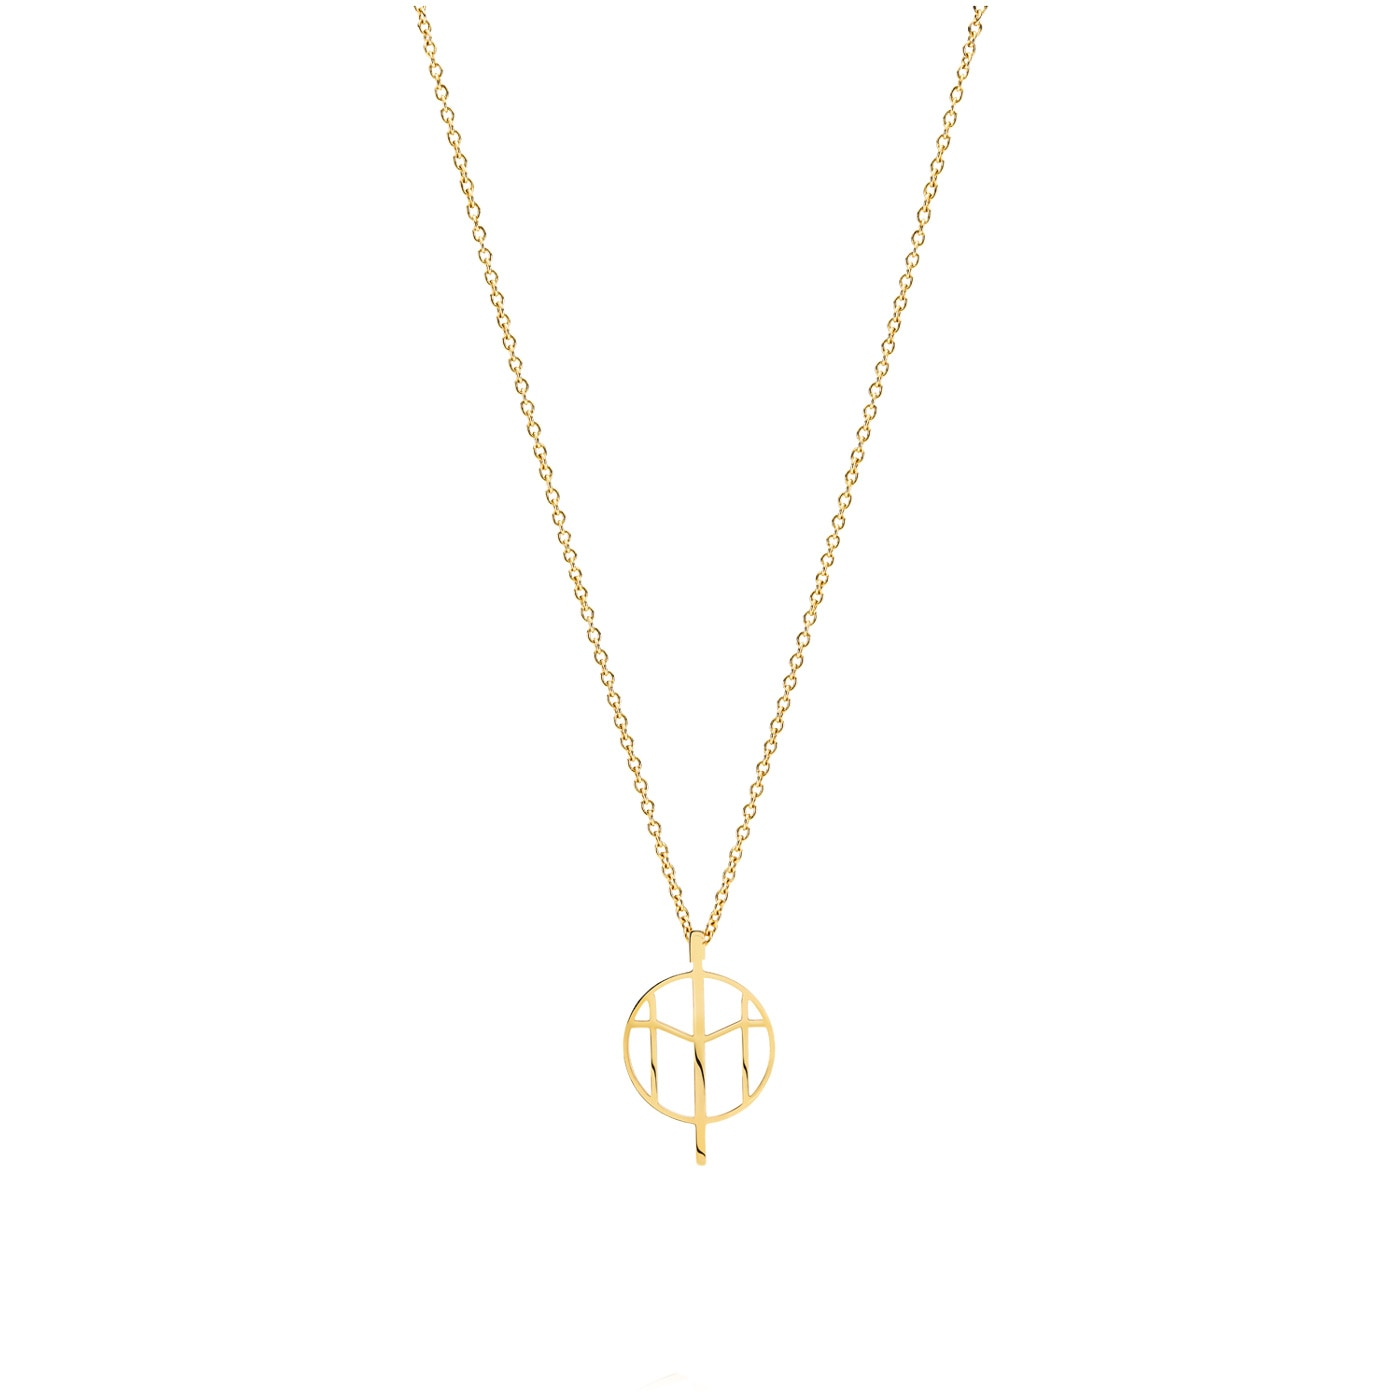 M-Necklace-G-Small